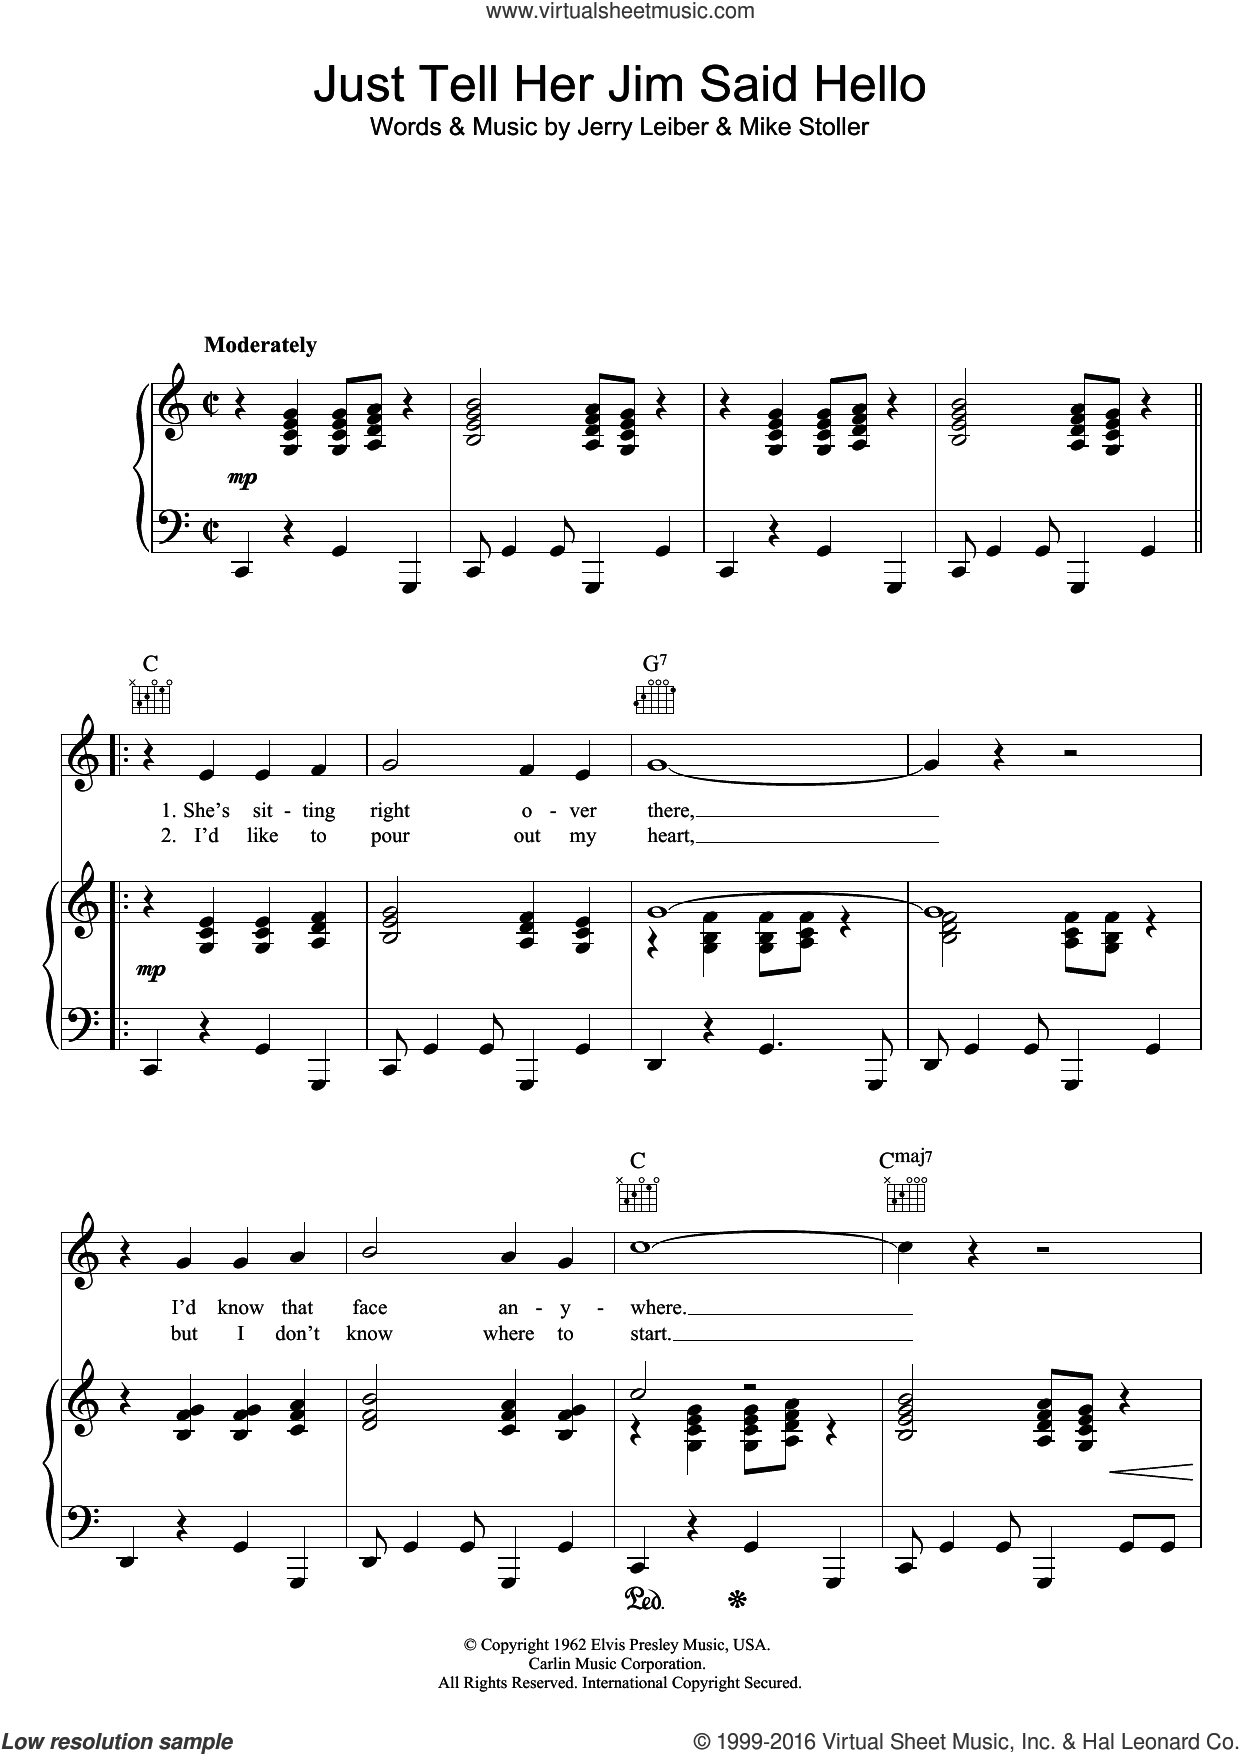 Just Tell Her Jim Said Hello sheet music for voice, piano or guitar by Elvis Presley and Mike Stoller, intermediate voice, piano or guitar. Score Image Preview.